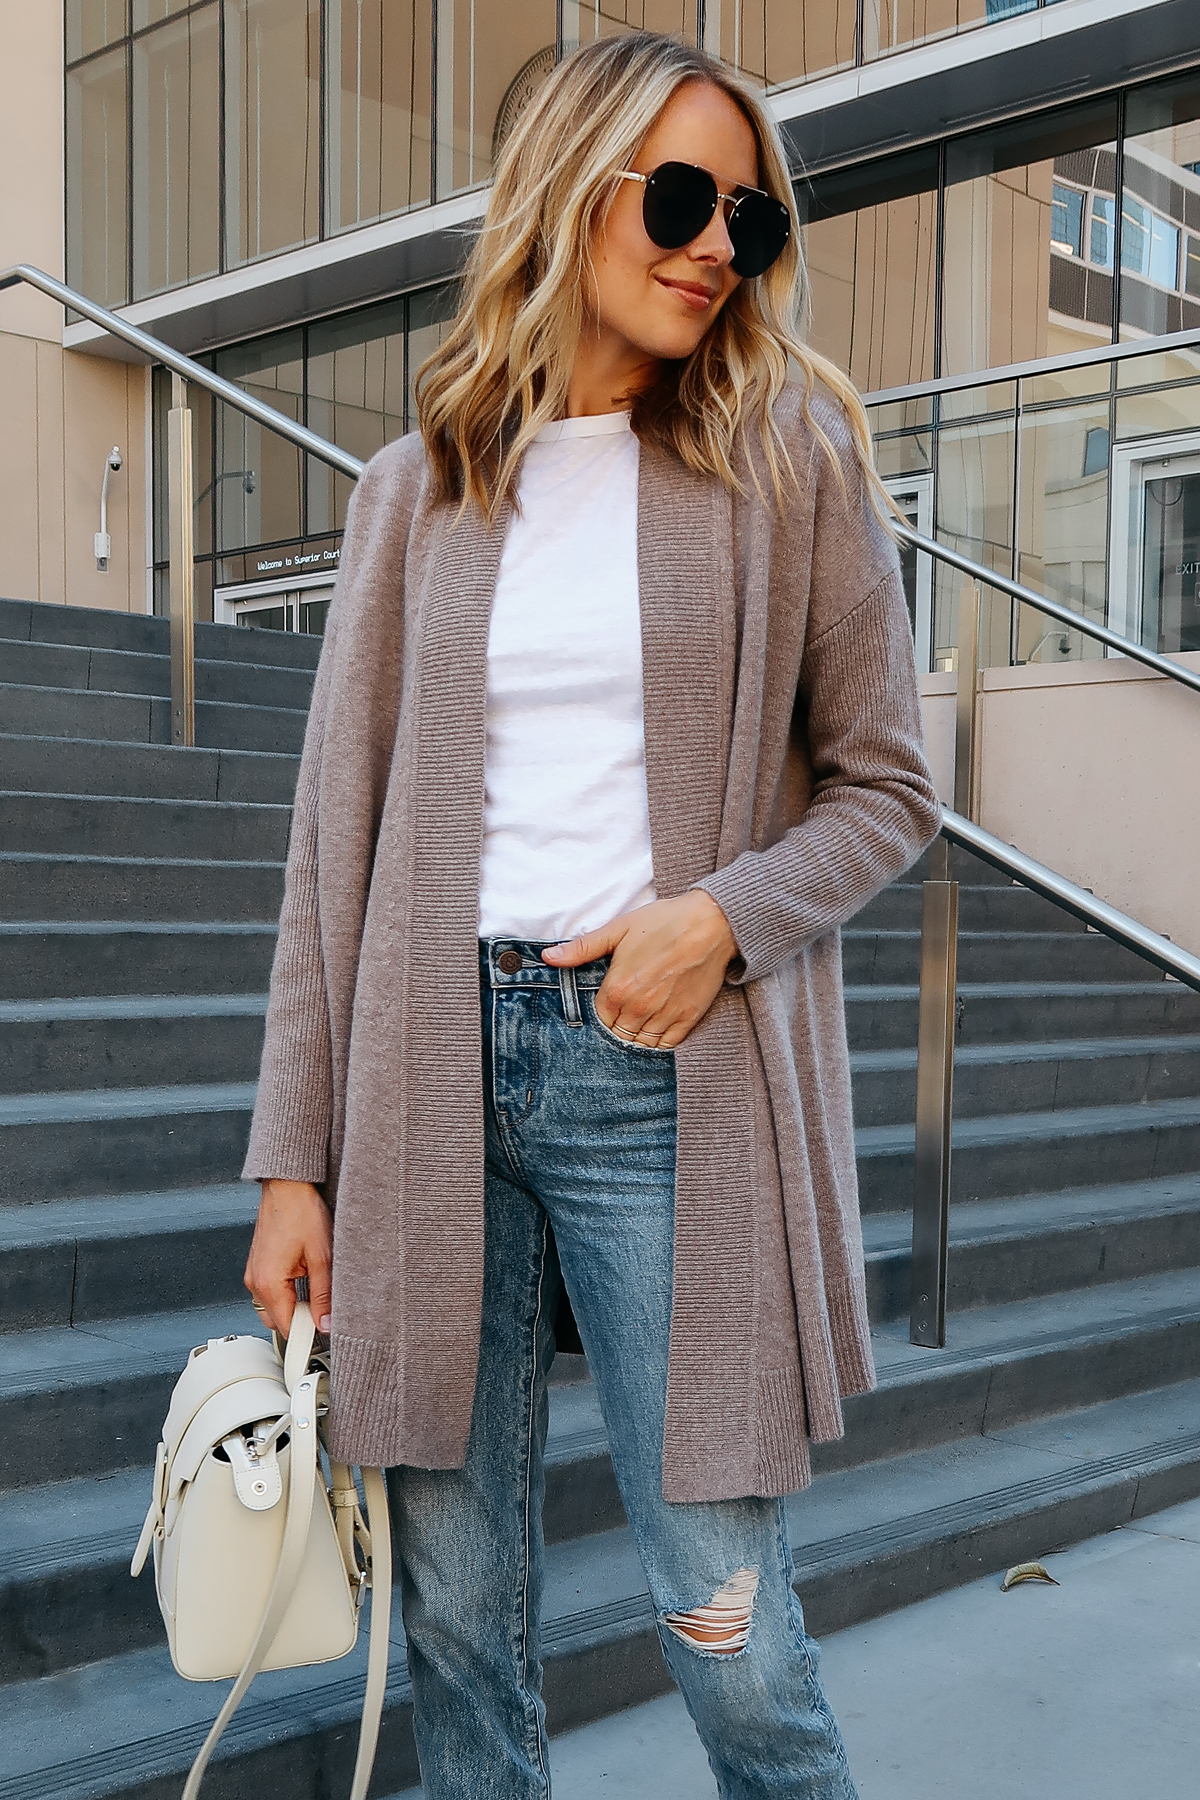 Blonde Woman Wearing Nordstrom Anniversary Sale Halogen Cashmere Cardigan White Tshirt Relaxed Ripped Cropped Jeans Senreve Mini Maestra Satchel White Aviator Sunglasses Fashion Jackson San Diego Blogger Fashion Blogger Street Style